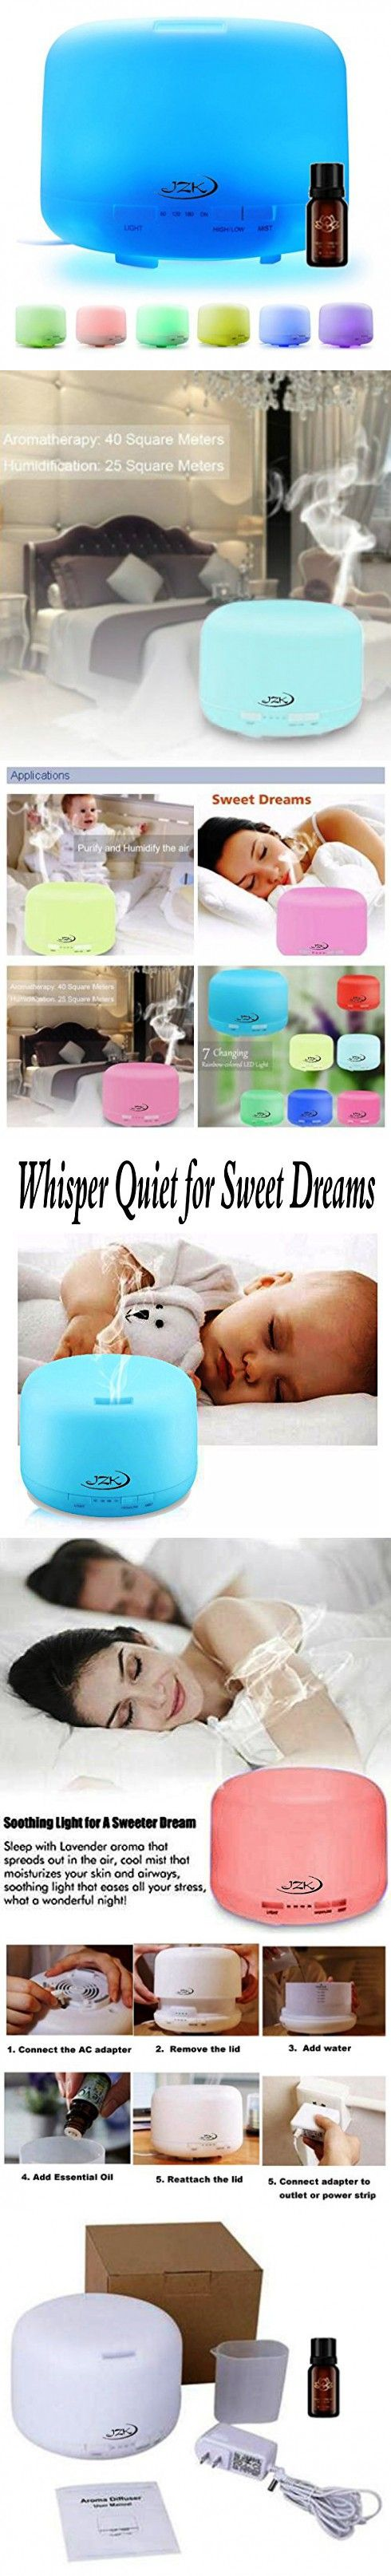 500 ml Aromatherapy Essential Oil Diffuser Ultrasonic Cool Mist Humidifier with 4 Timer Settings, 7 LED Color Changing Lights and Auto Shut-off for Office Home Bedroom Baby Room Study Yoga Spa by JZK